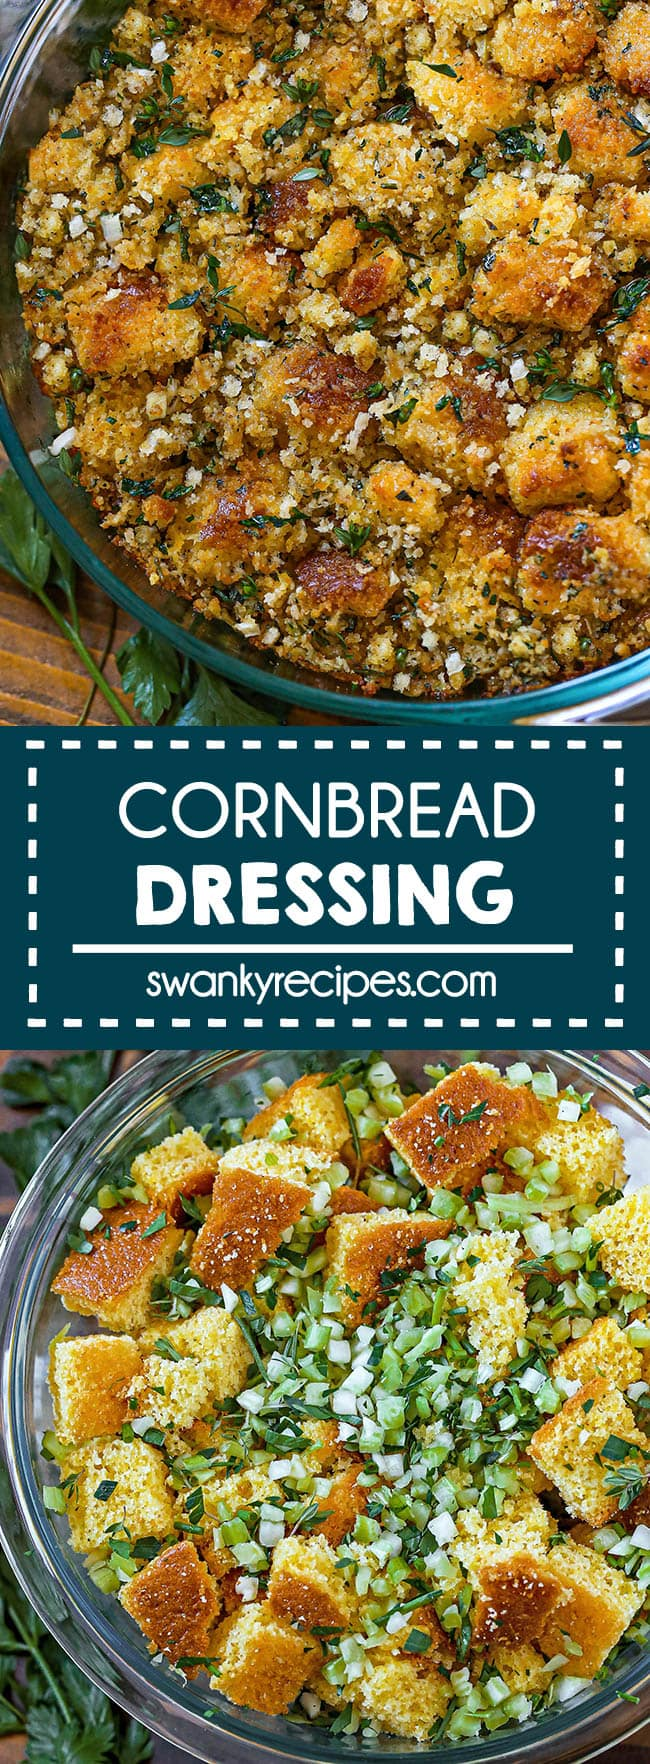 Classic Cornbread Dressing - Toasted cornbread pieces in a glass casserole dish with classic vegetables like chopped onions, bell peppers, and celery scattered in the dish with fresh green herbs on top. Served in a round dish on a wooden board with parsley leaves in the background.